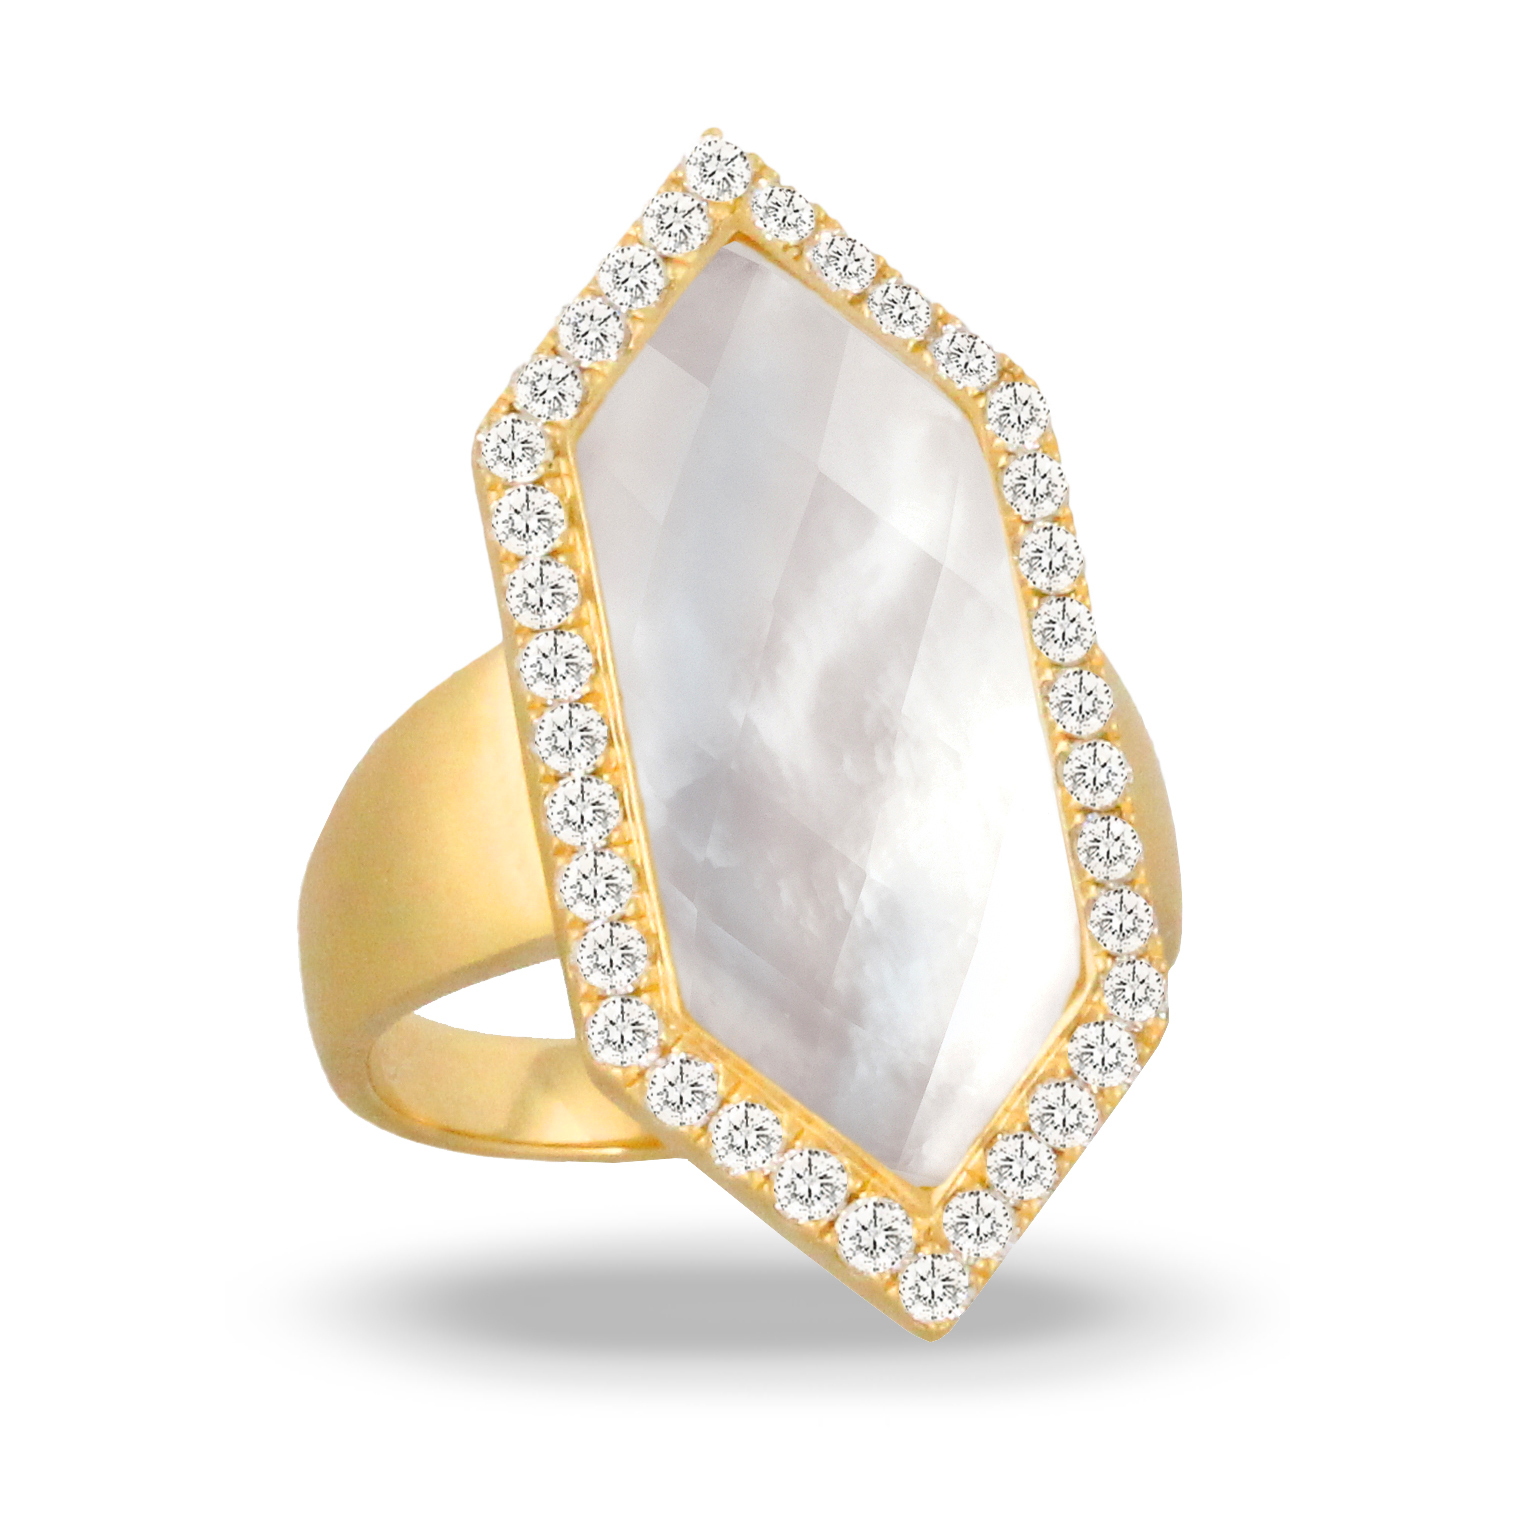 18K Diamond Pearl Ring - 18K Yellow Gold Diamond Ring With Clear Quartz Over White Mother Of Pearl Center. In Satin Finish